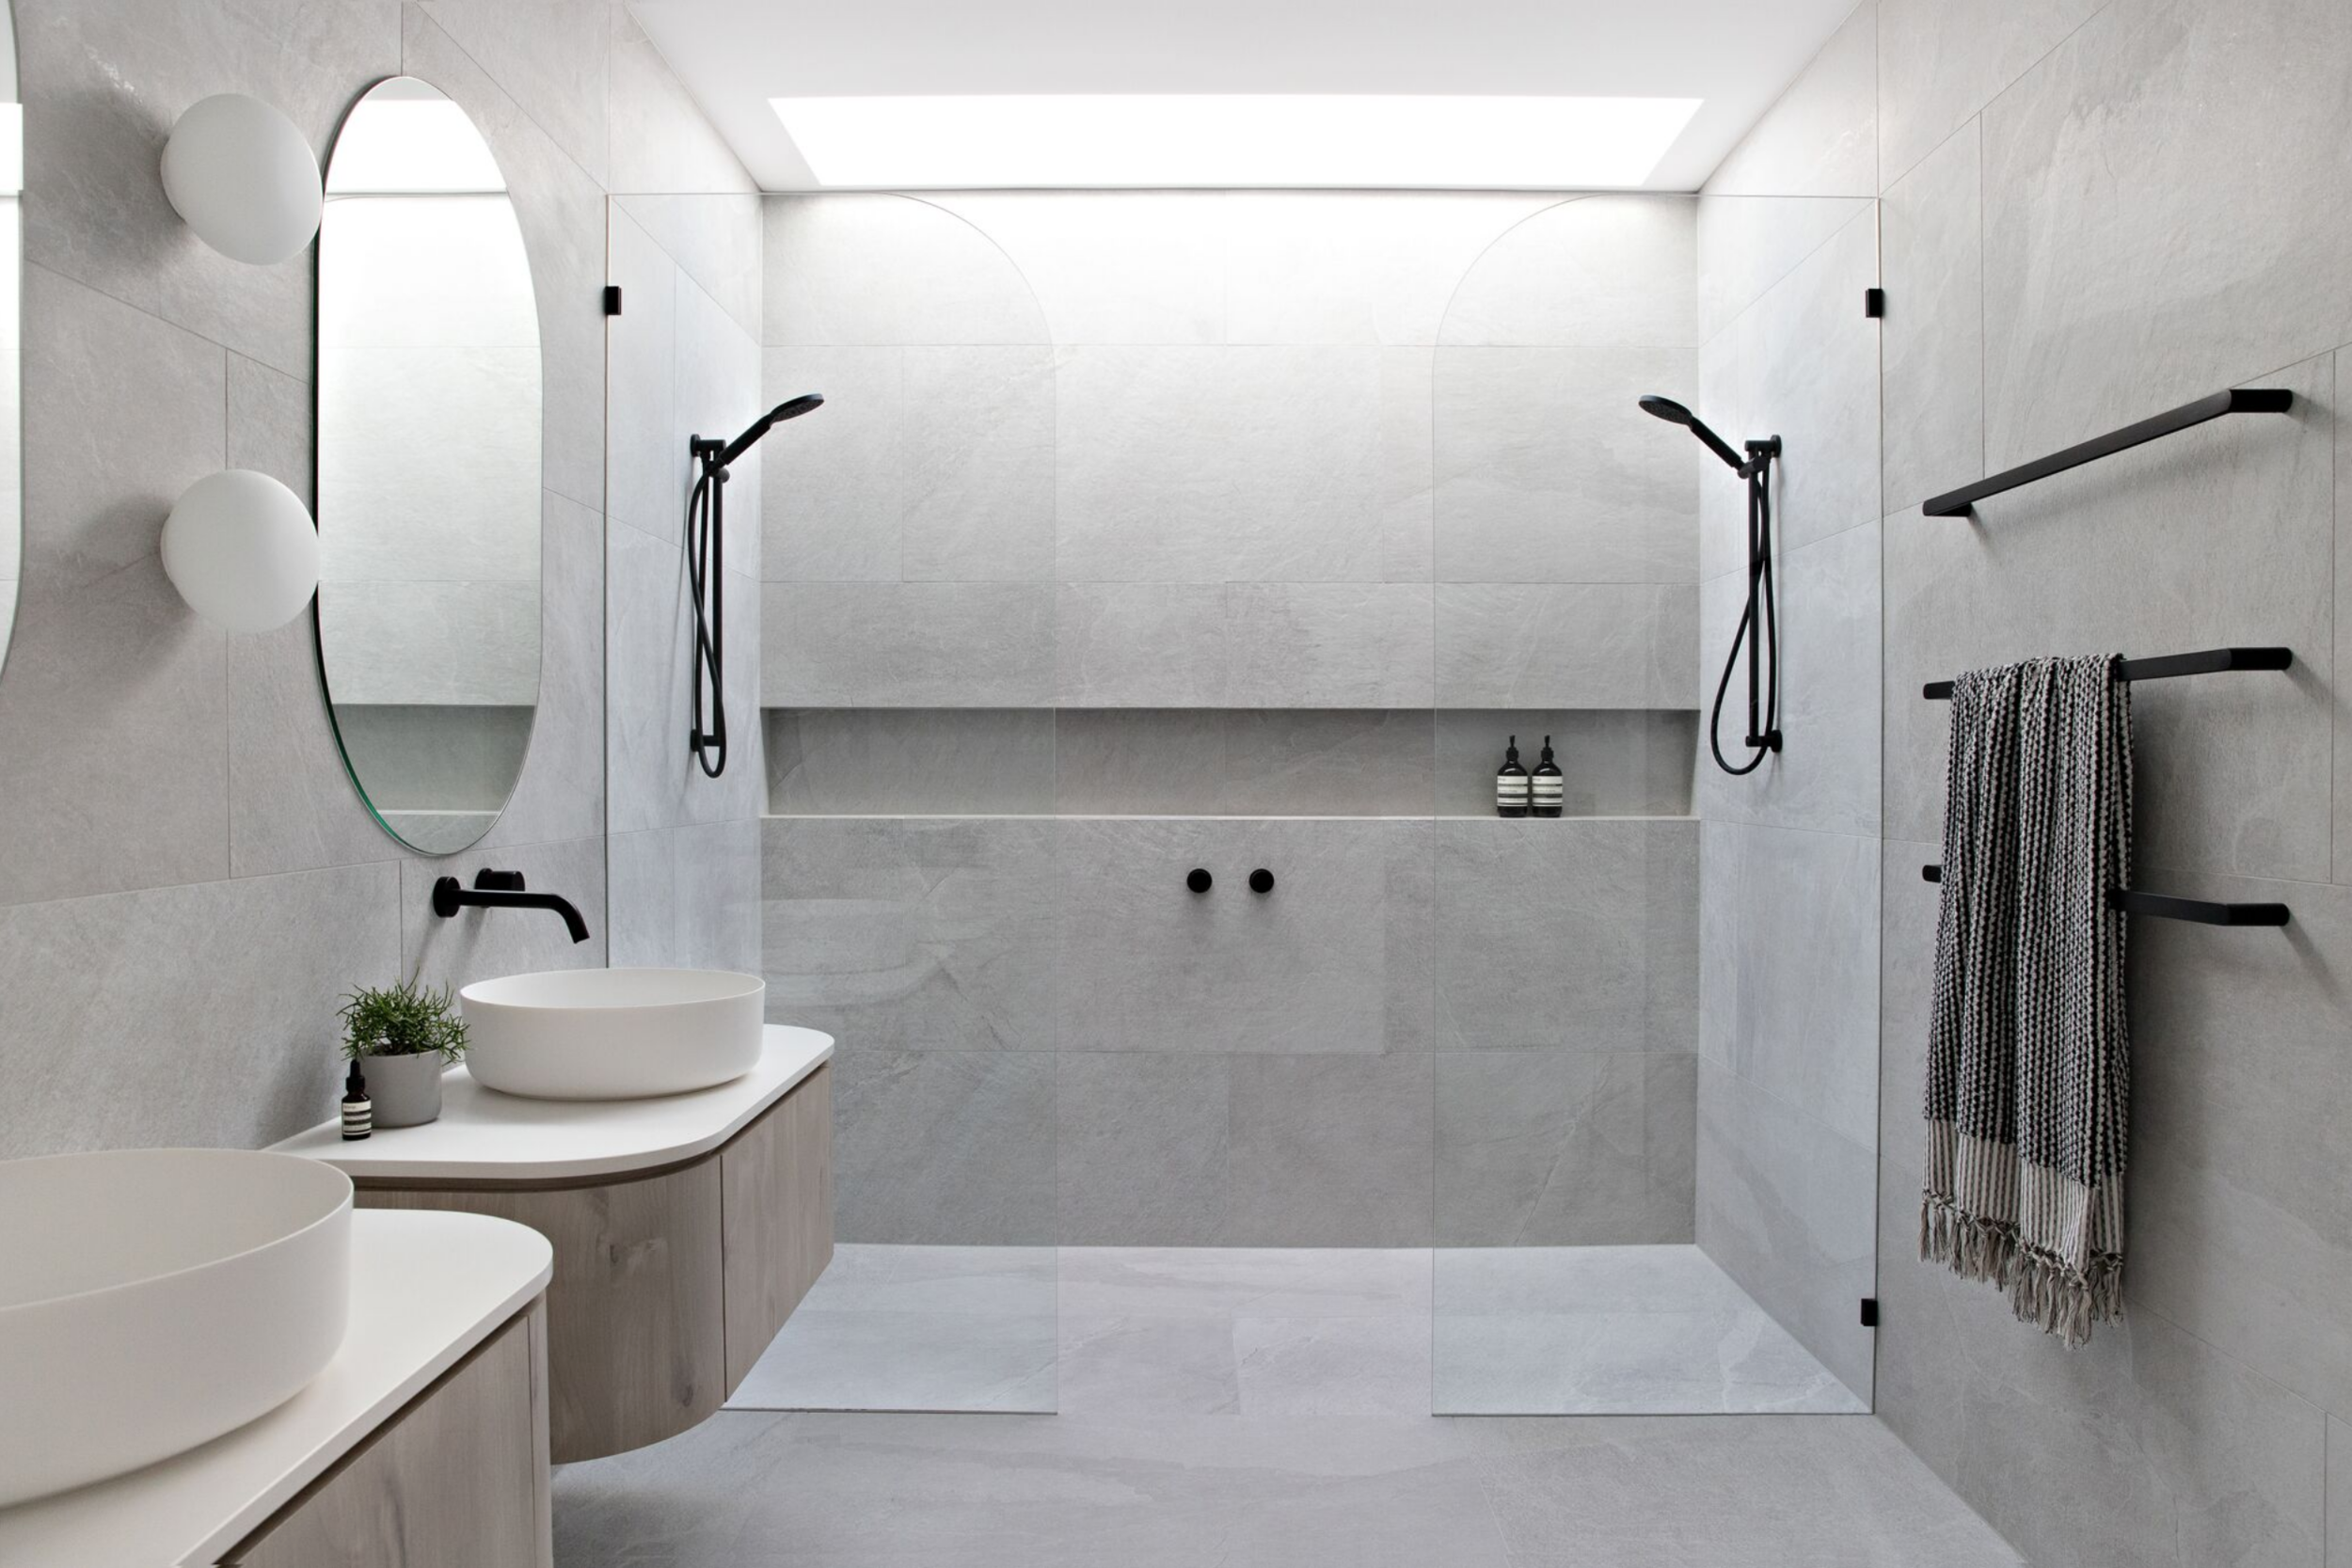 Mix Or Match? Our Tips For Picking The Perfect Tile — Zephyr + Stone